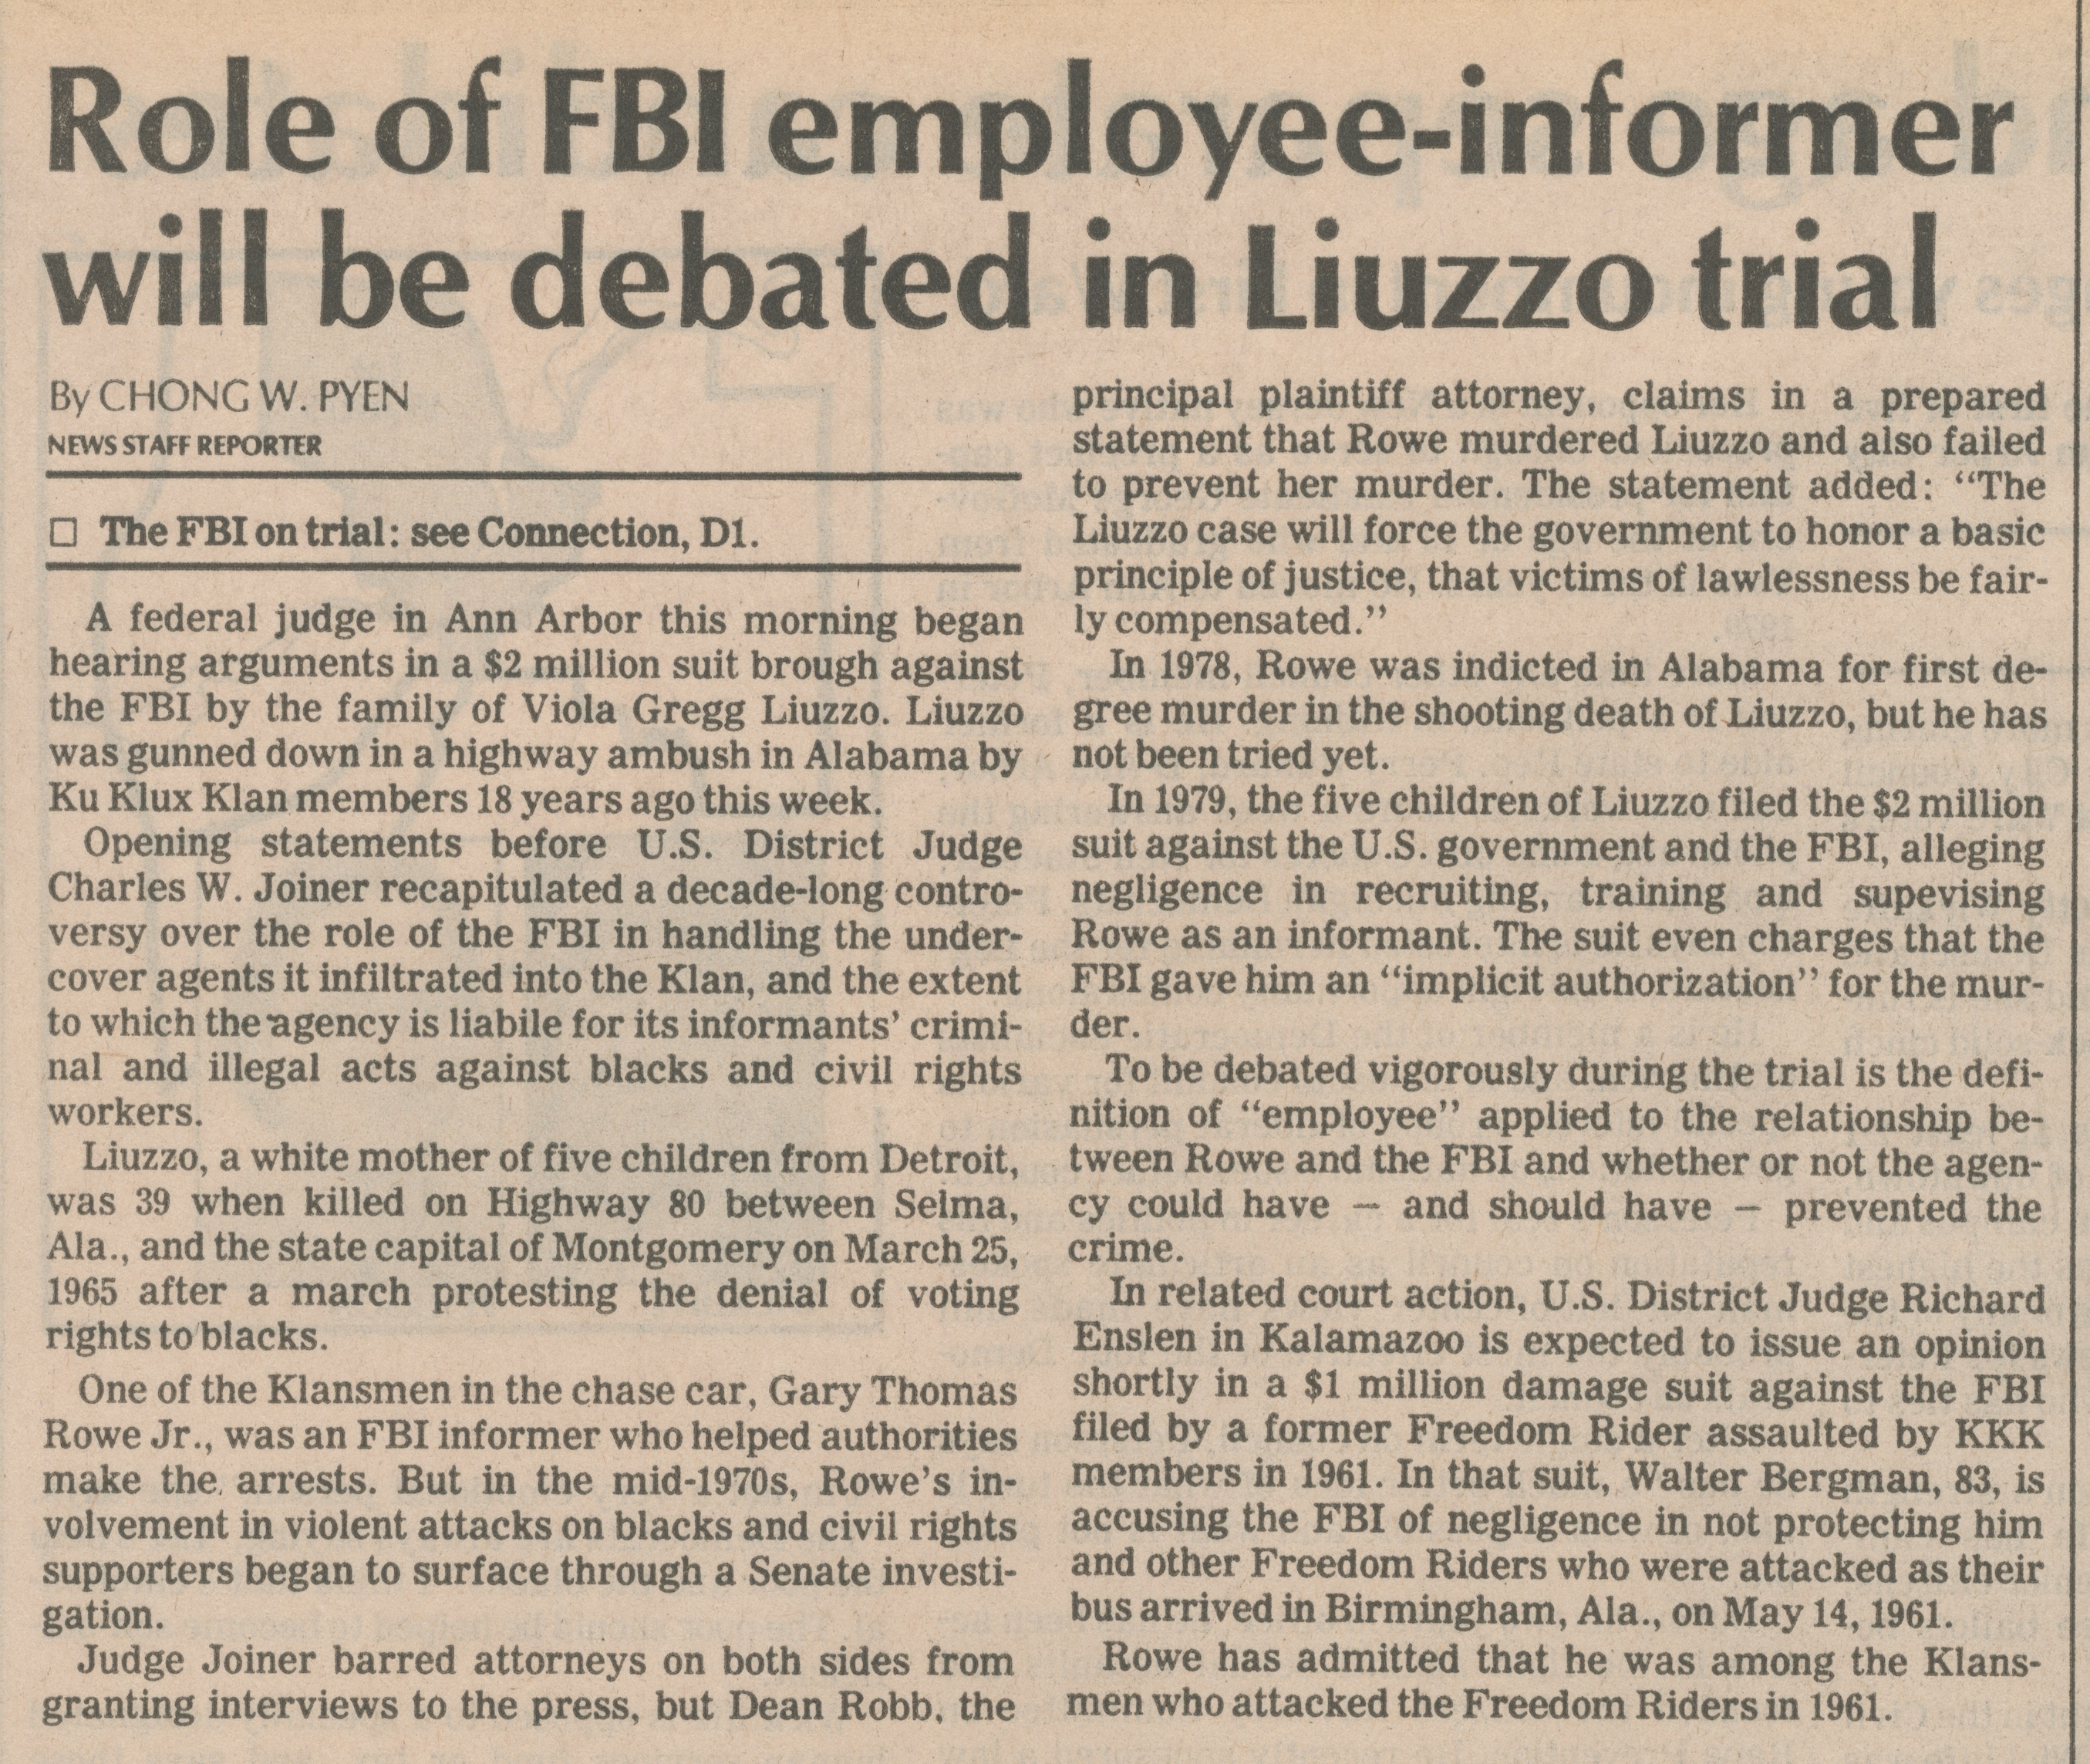 Role Of FBI Employee-Informer Will Be Debated In Liuzzo Trial image